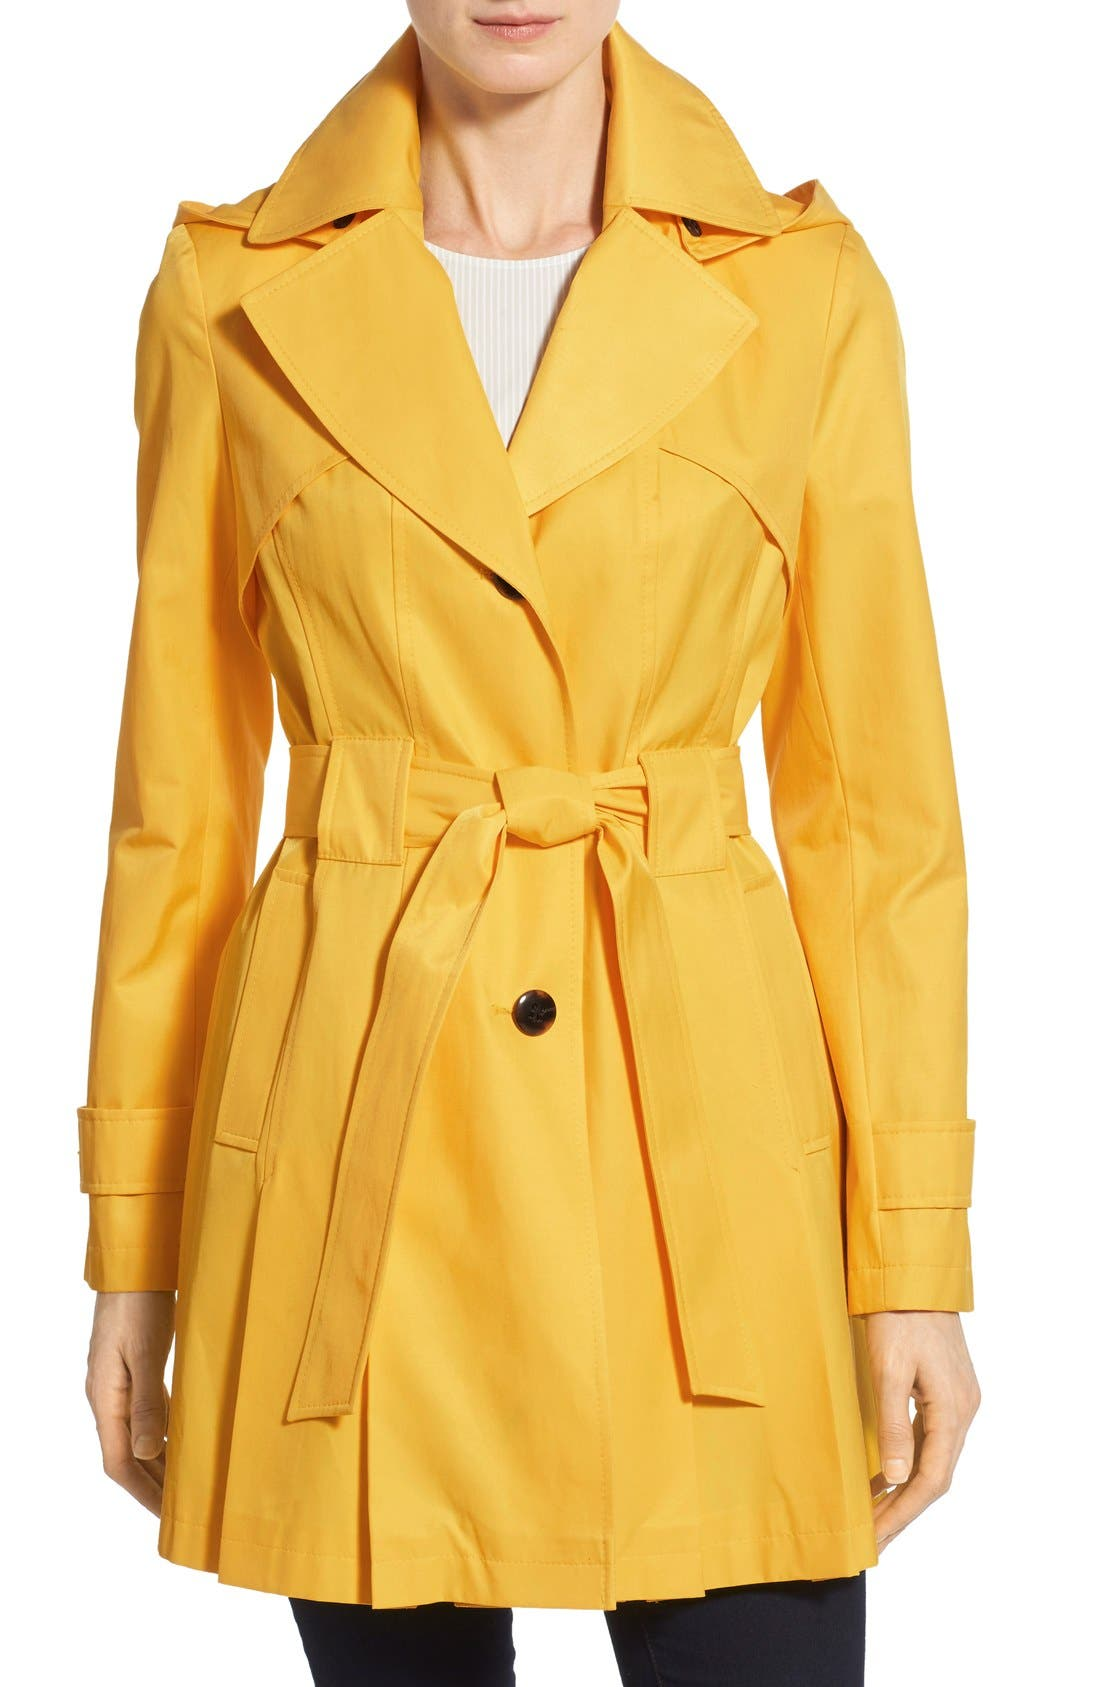 'Scarpa' Hooded Single Breasted Trench Coat,                             Main thumbnail 8, color,